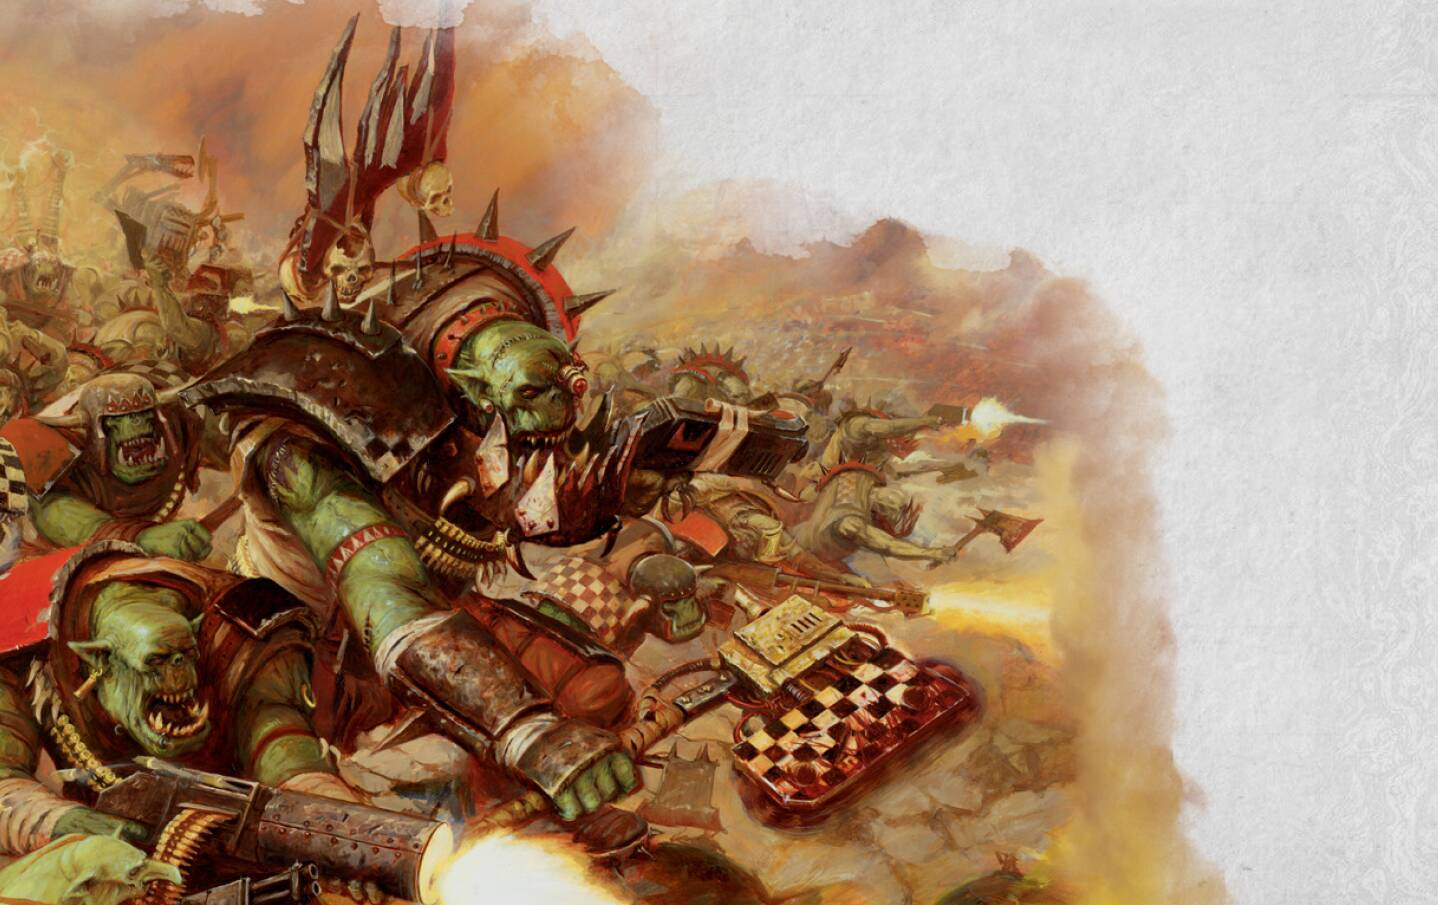 Warhammer 40,000 Roleplay: Wrath & Glory